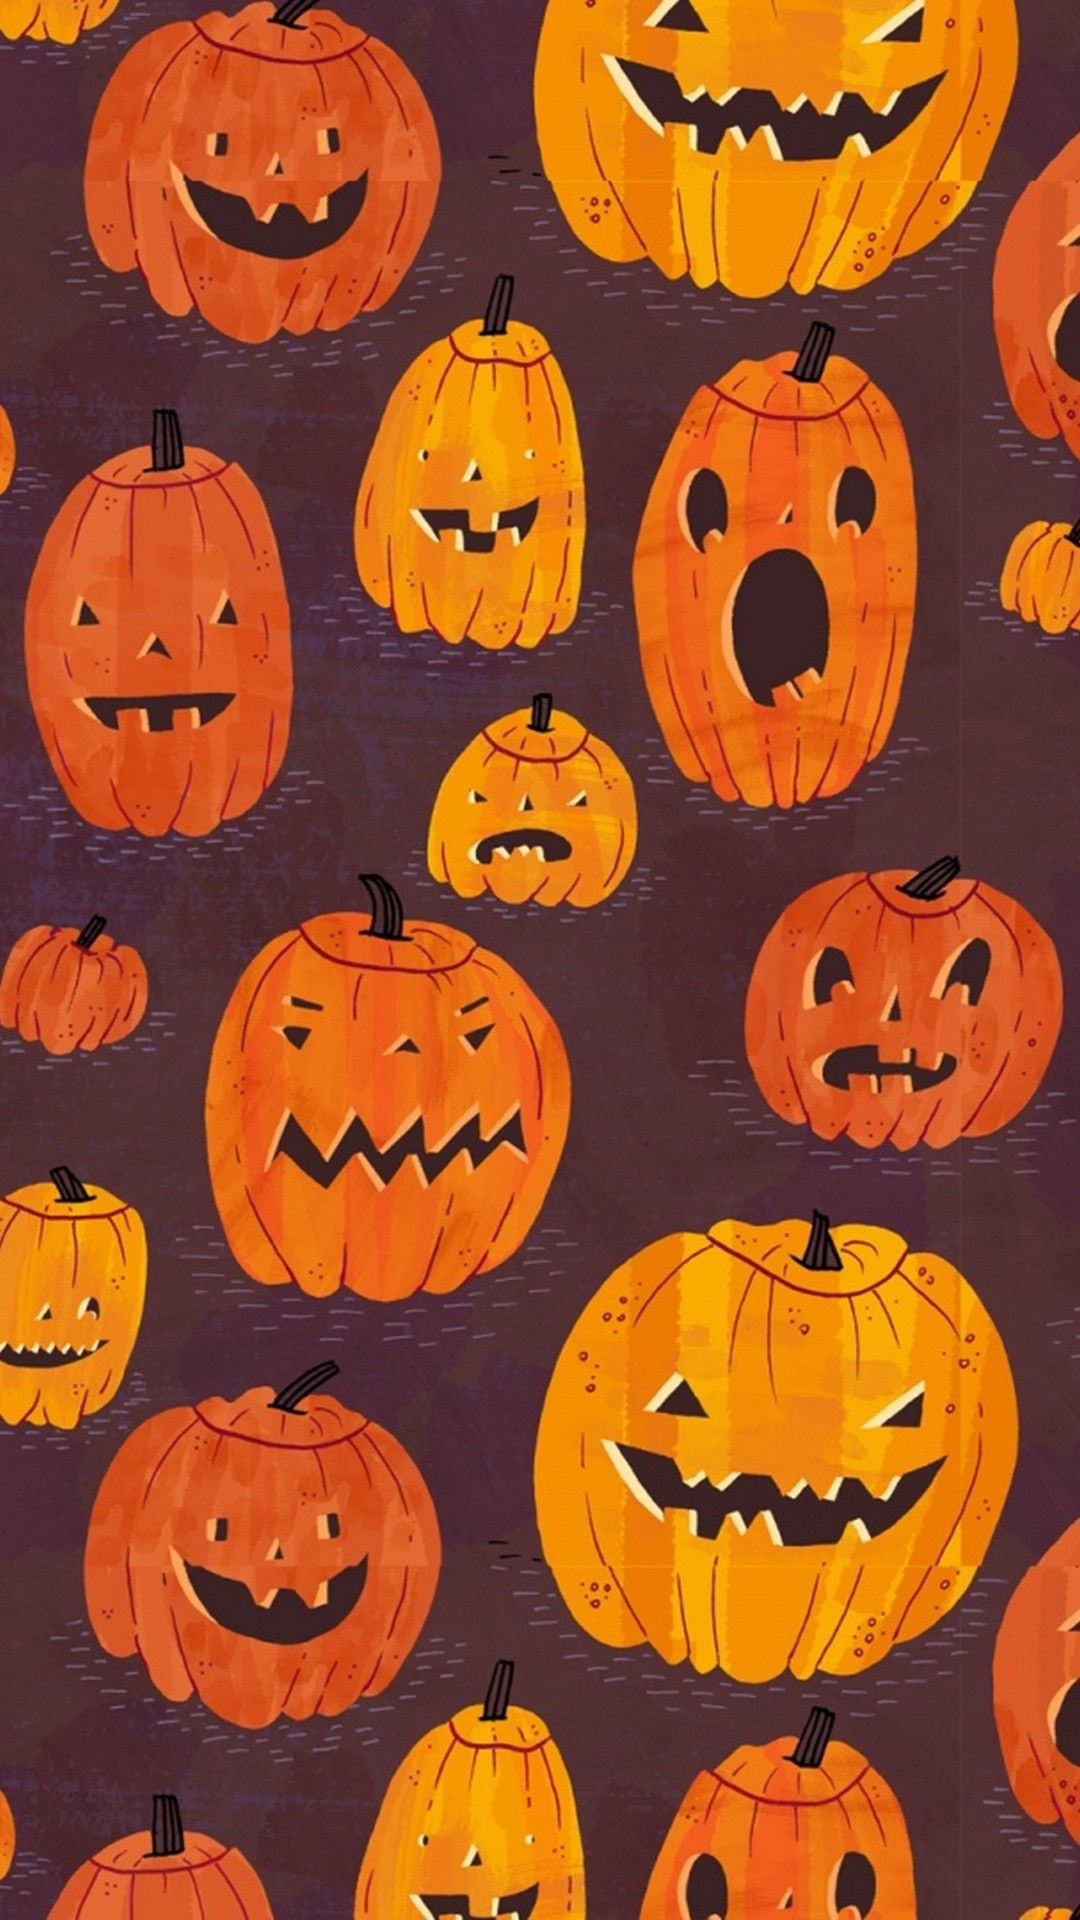 Iphone Halloween Wallpaper Best Wallpaper Hd Halloween Wallpaper Iphone Halloween Screen Savers Pumpkin Wallpaper